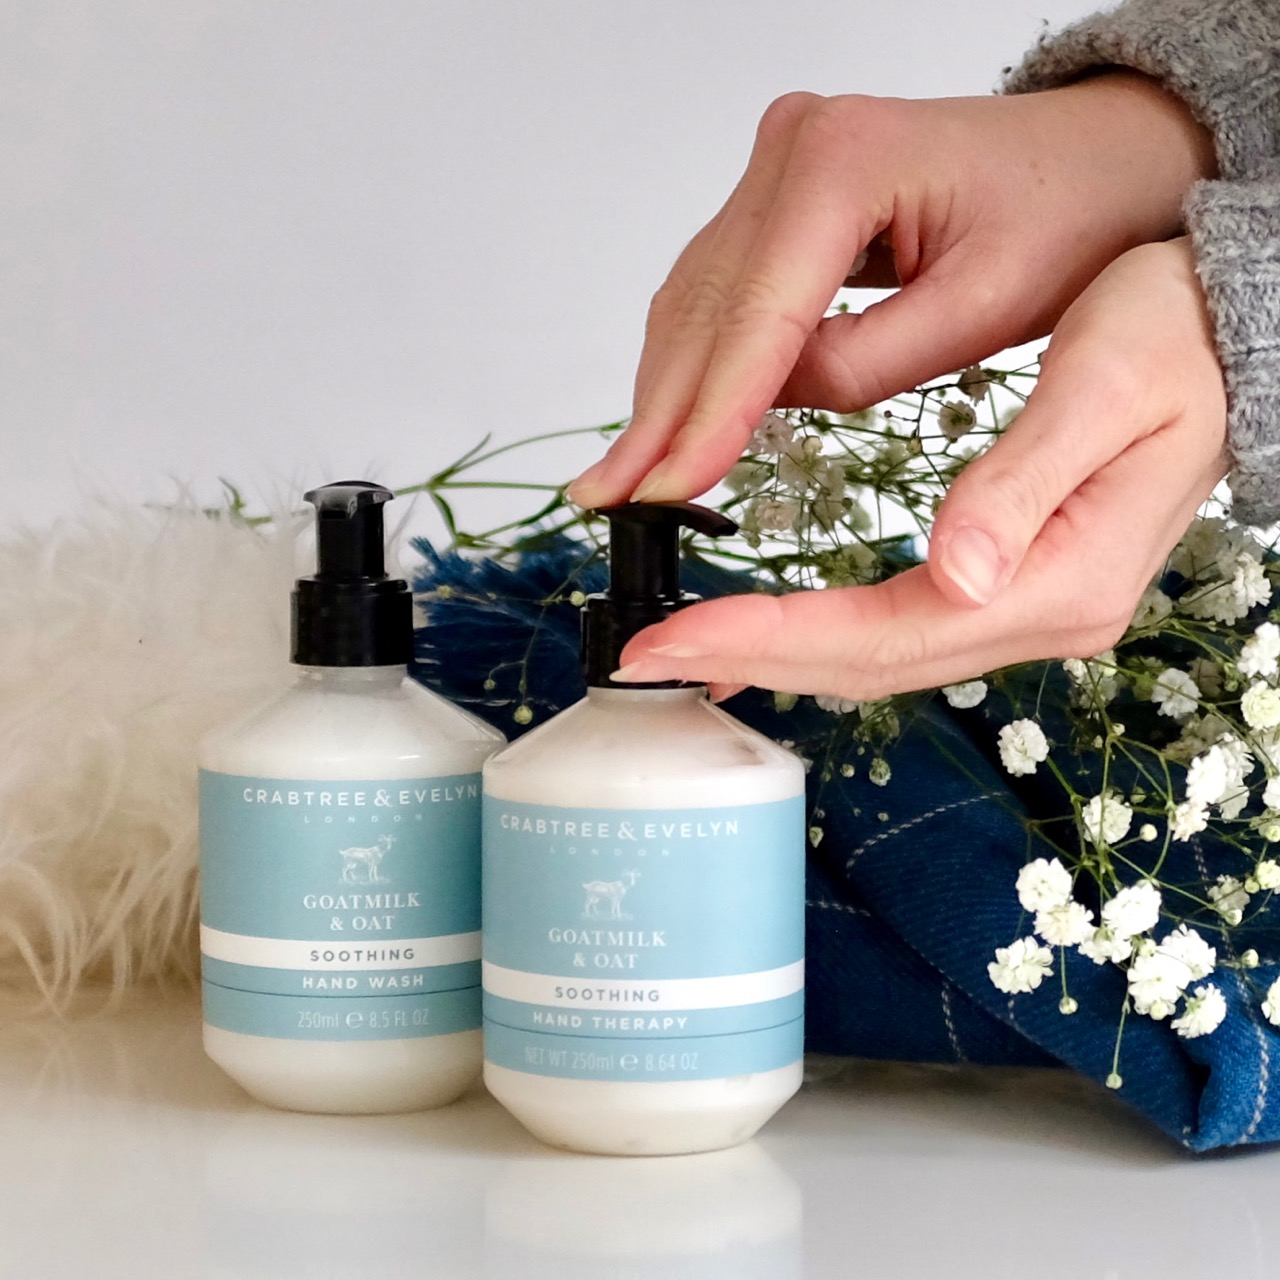 Crabtree and Evelyn Hand Therapy Goats Milk